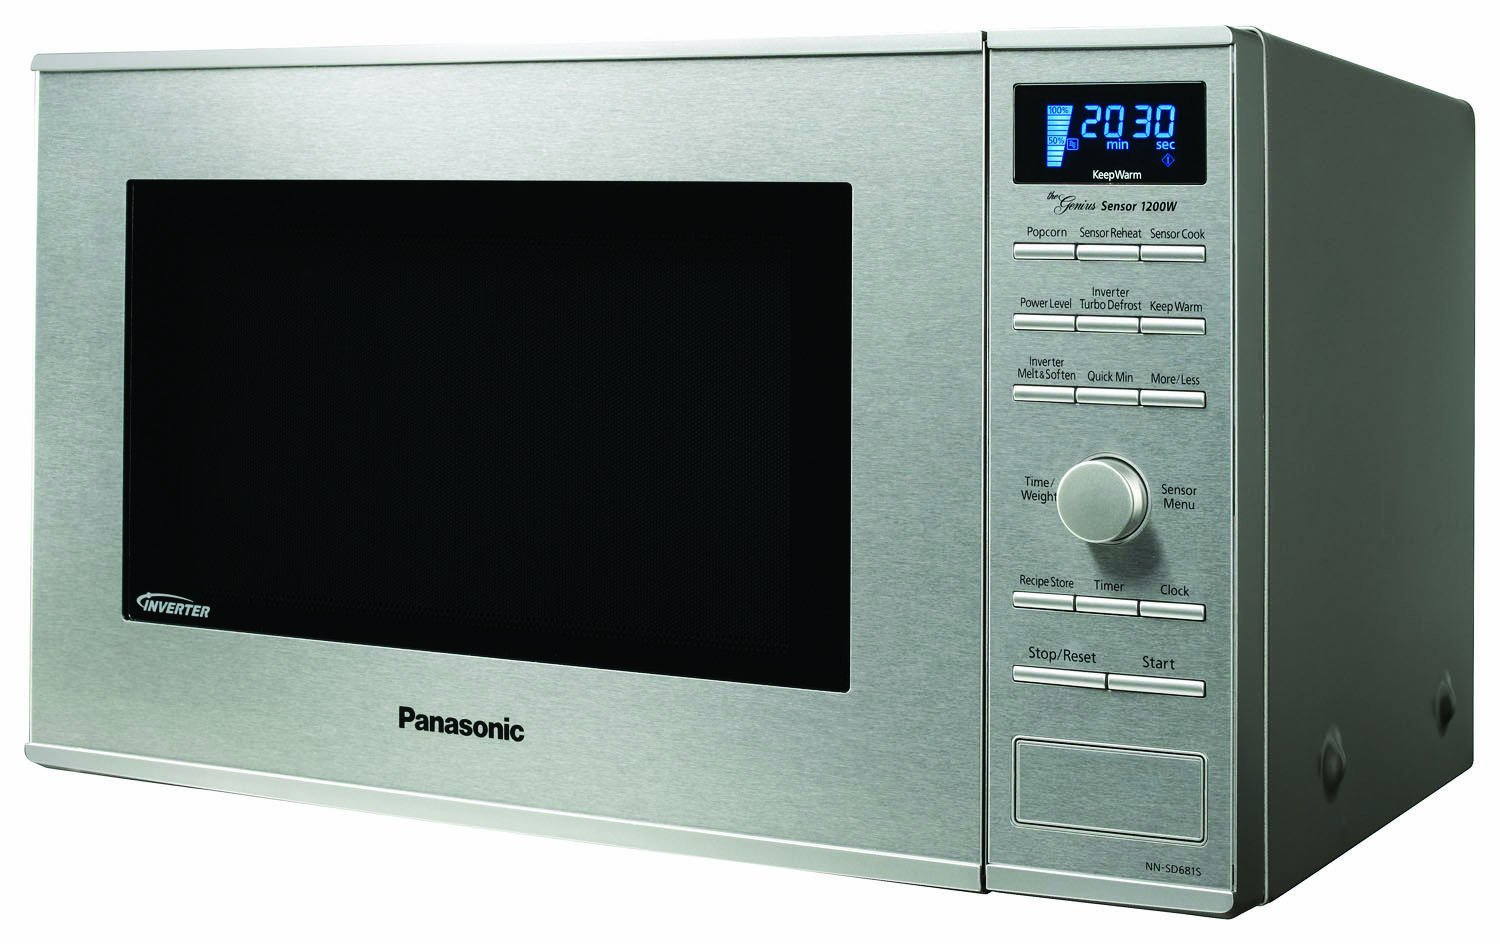 Range Oven Microwave Ovens Over The Range Reviews